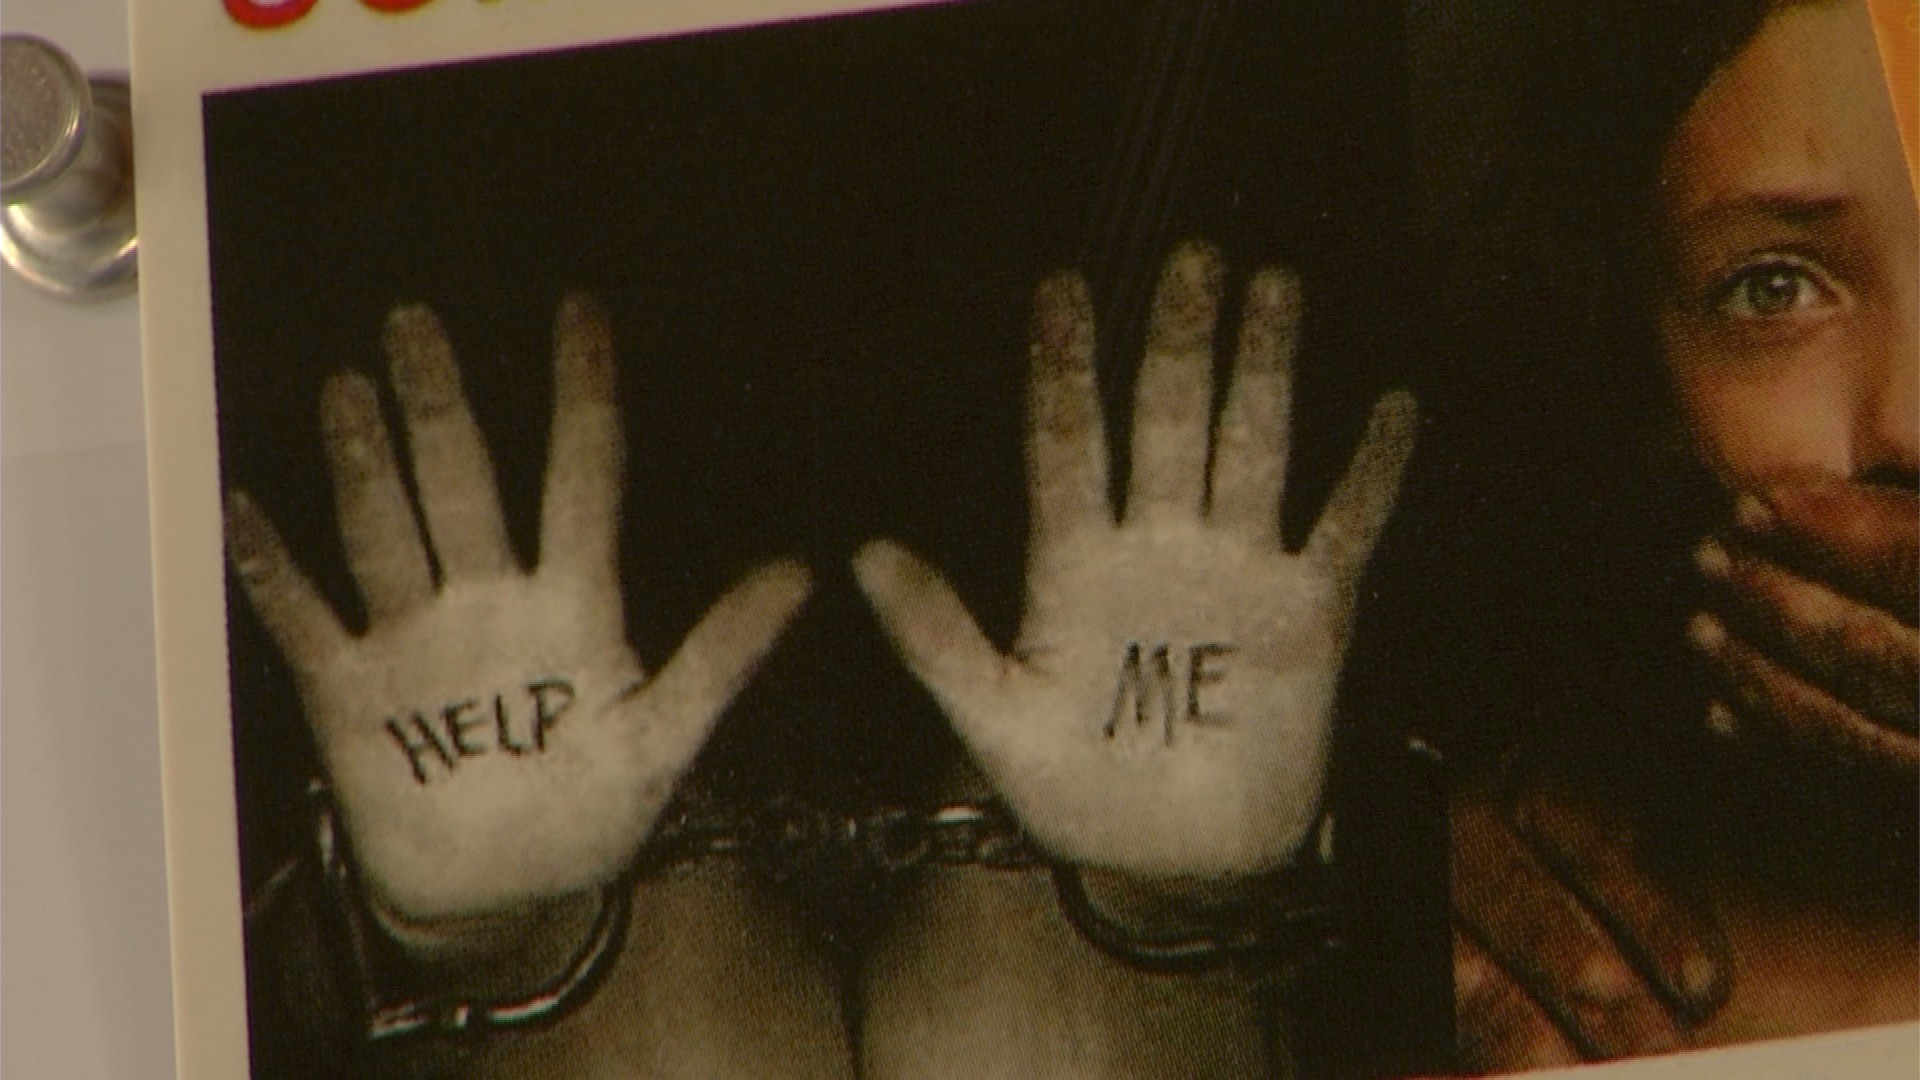 Special Report: Trafficking Innocence, A Hidden Epidemic - 9 & 10 News